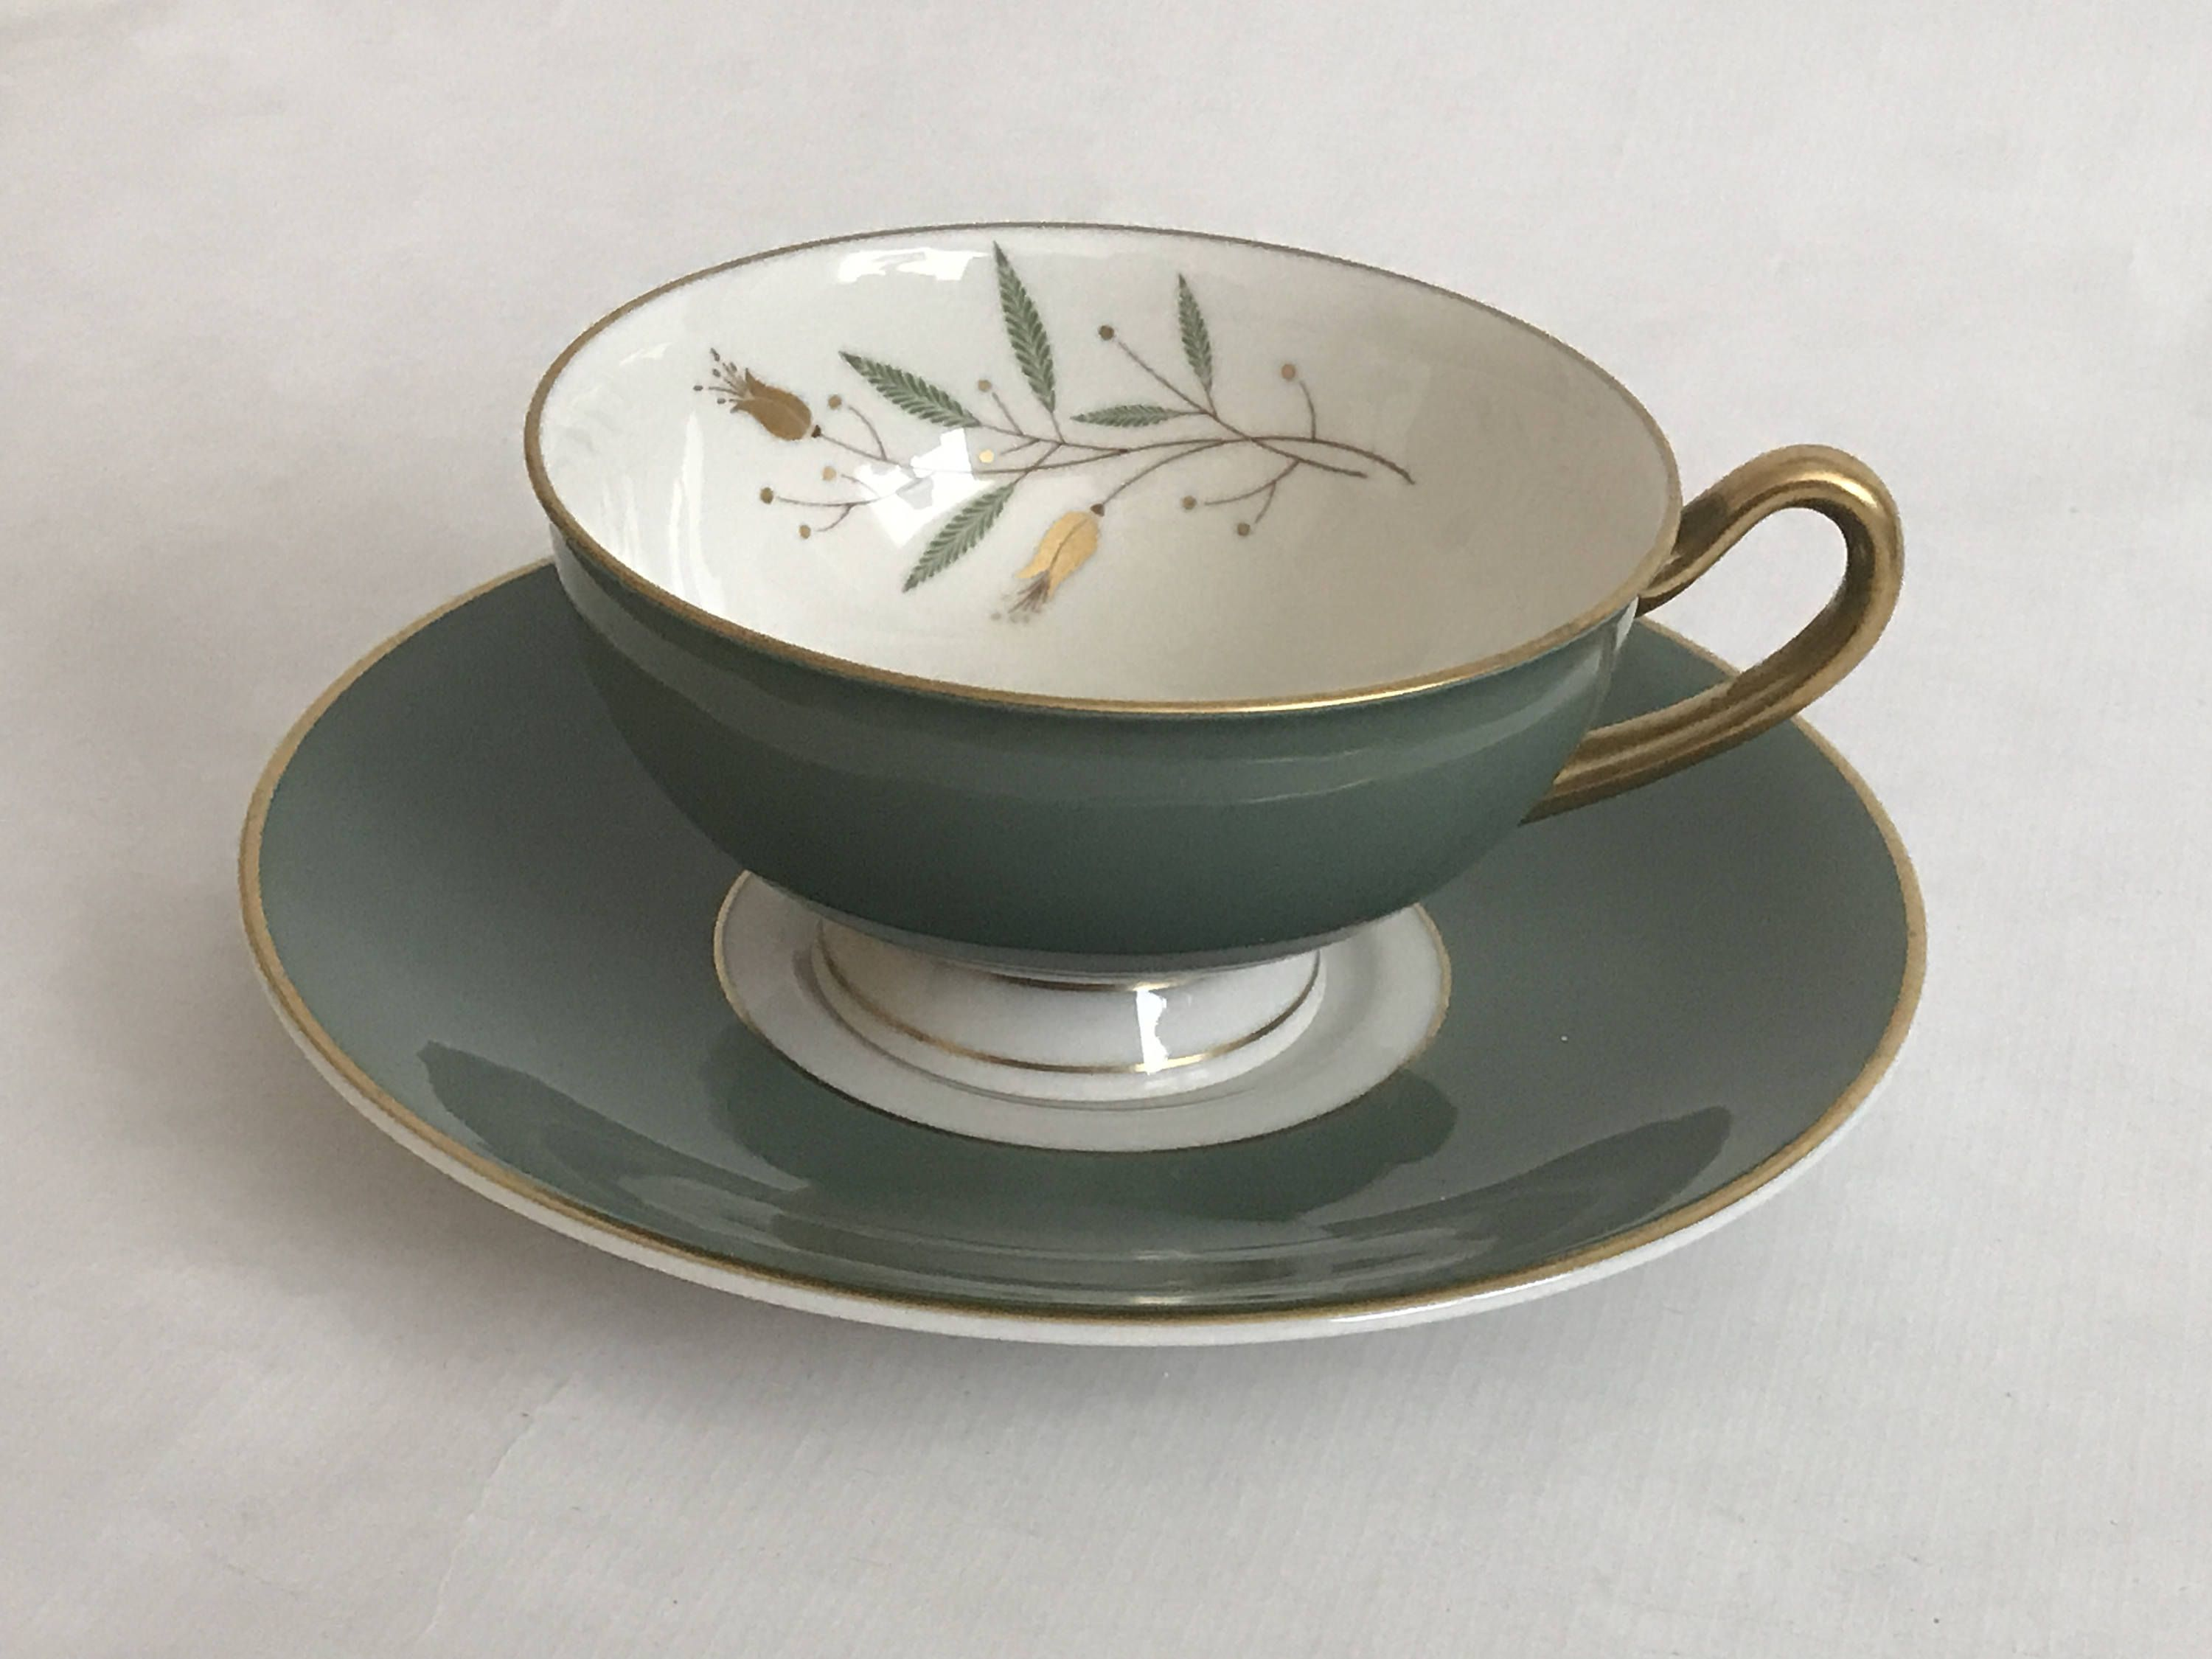 vintage syracuse mid century modern teacoffee cup  saucer  - vintage syracuse mid century modern teacoffee cup  saucer grandeurpatternivory green gold made in usa footed cup gold trim